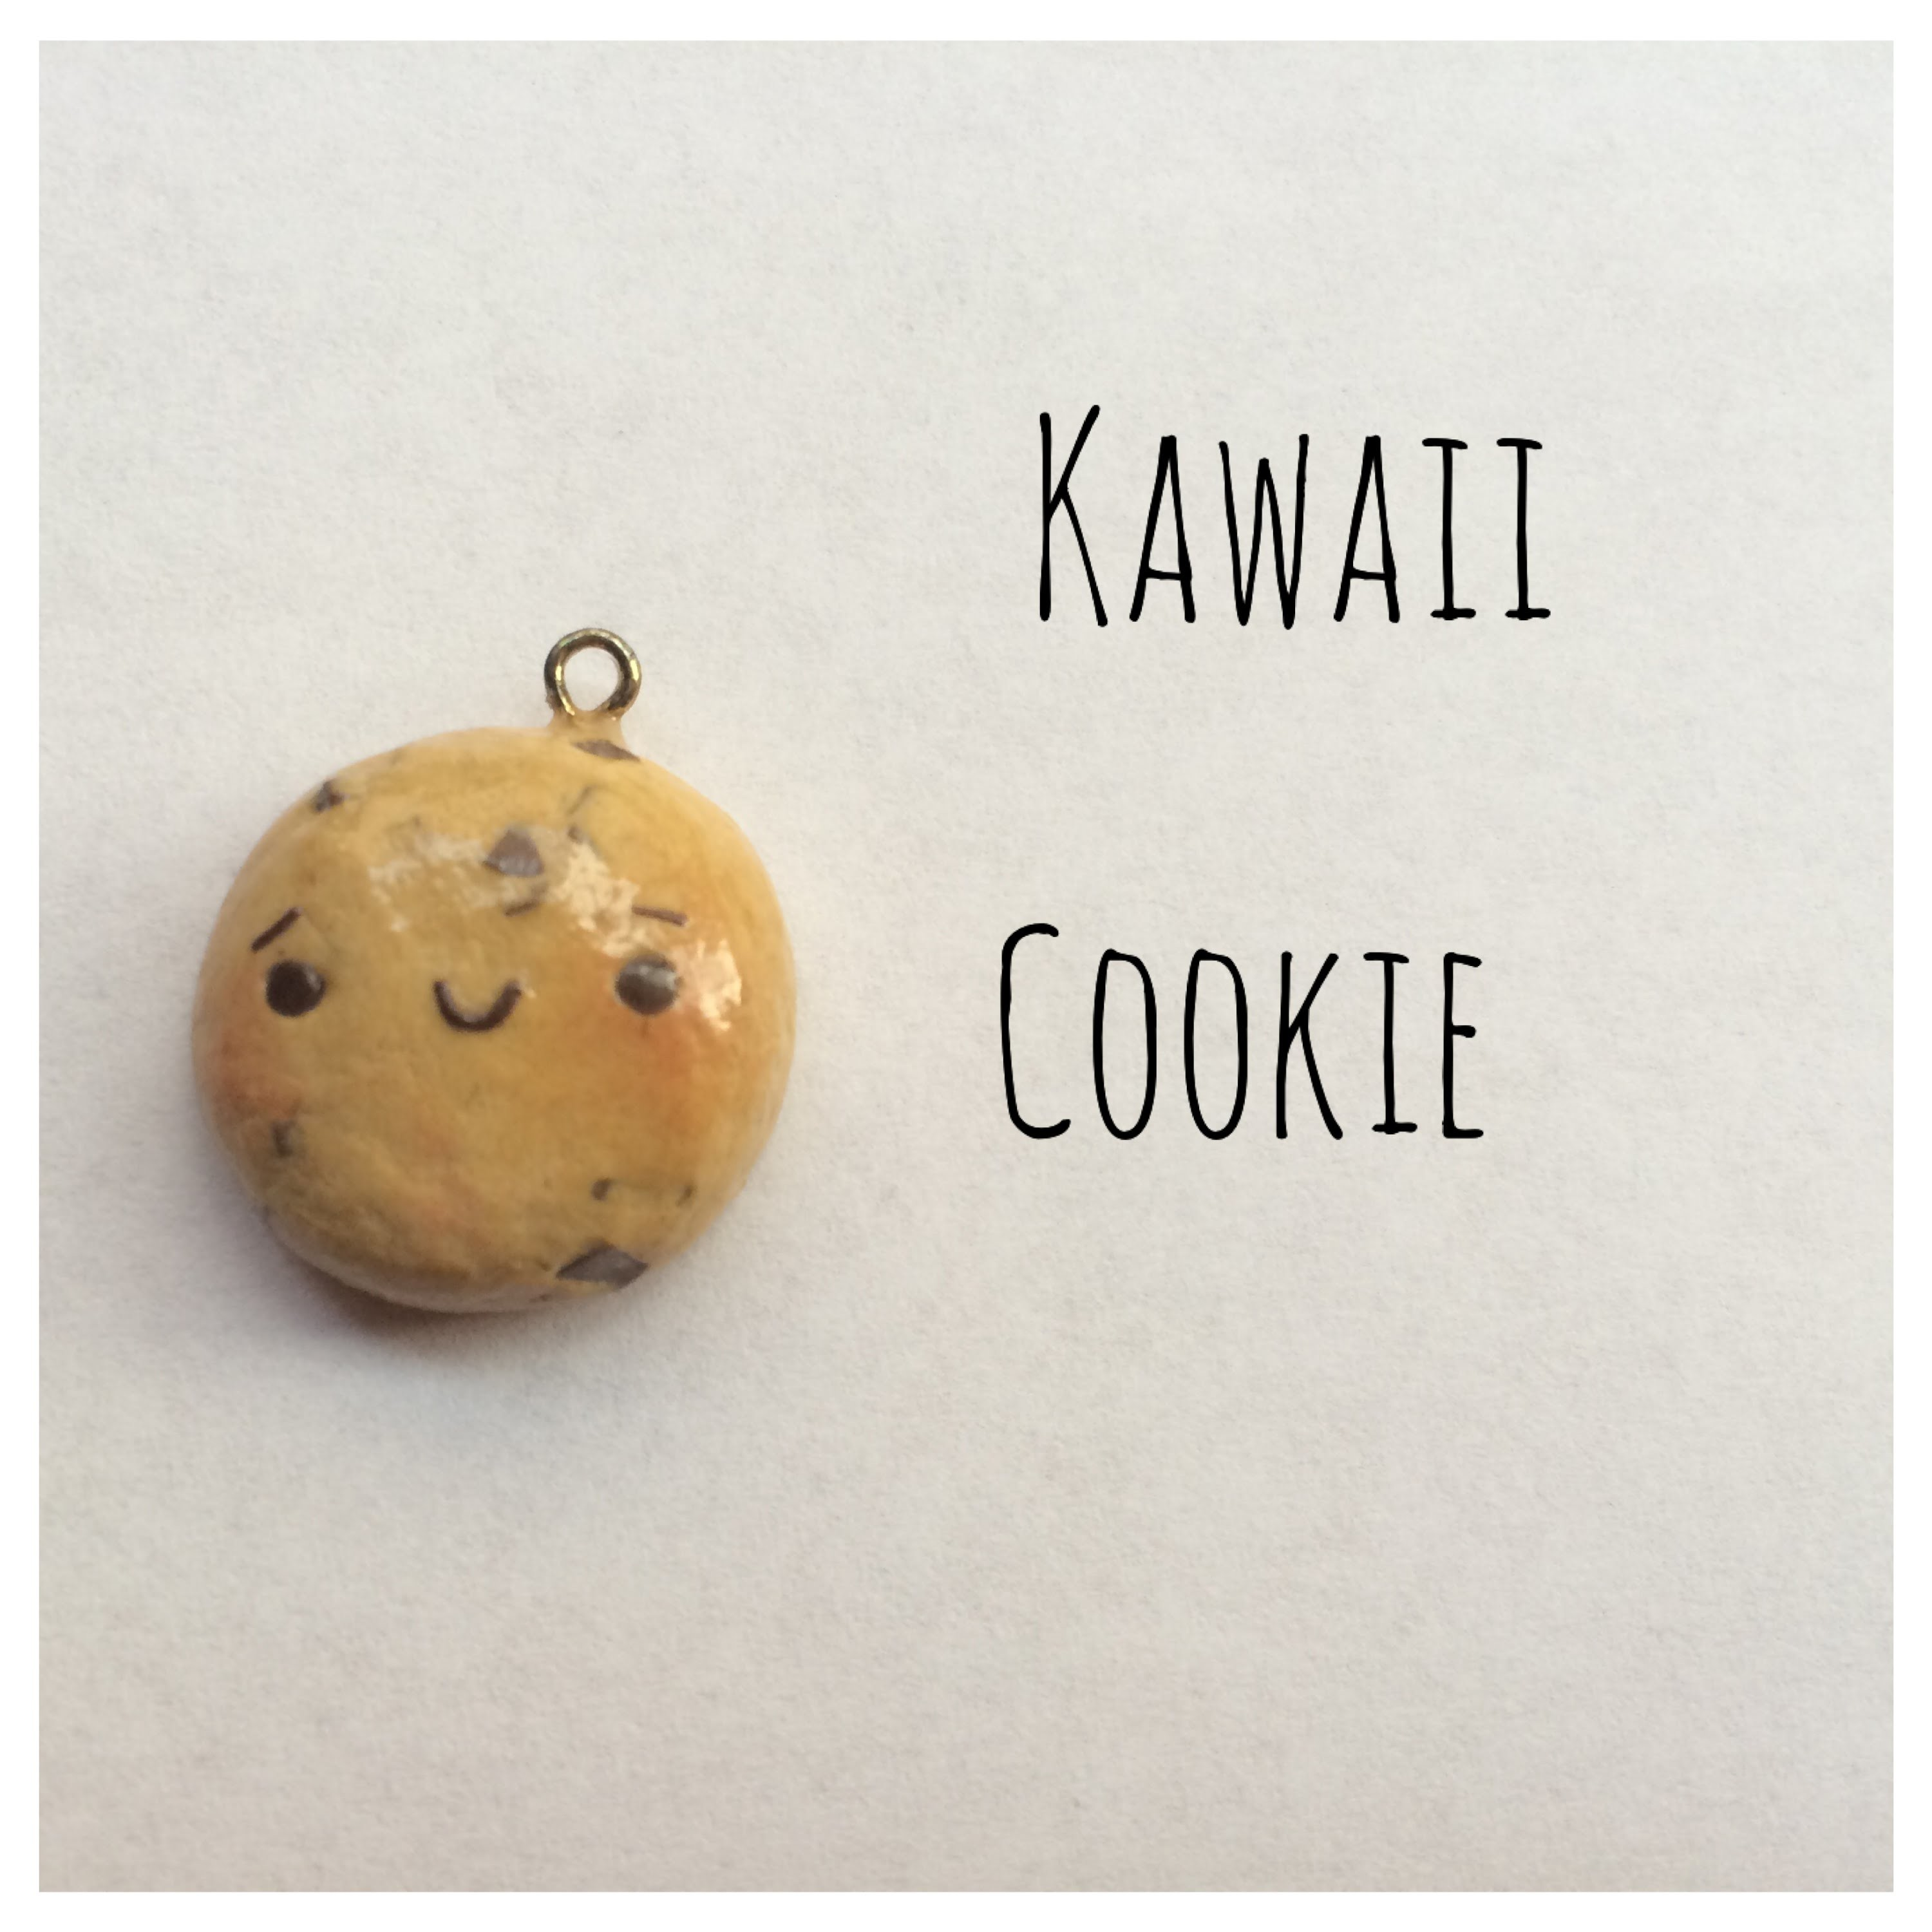 Kawaii Chocolate Chip Cookie Tutorial